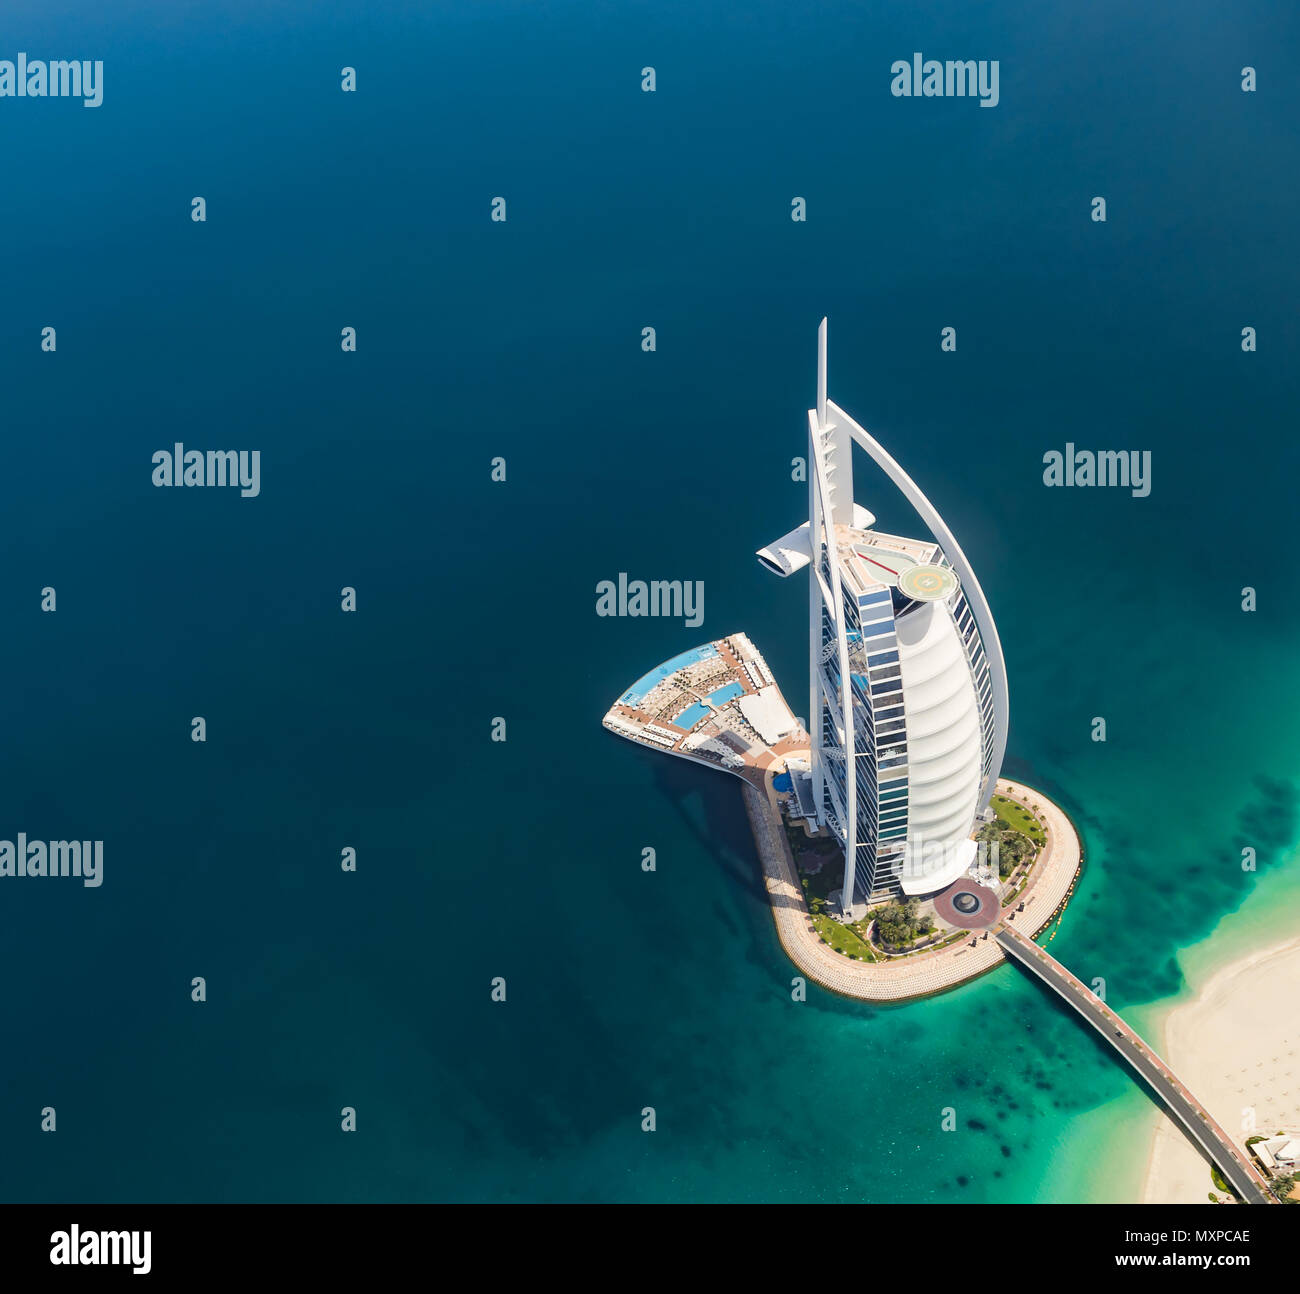 DUBAI, UAE - MARCH 2018: Aerial view of Burj Al Arab hotel in Dubai, one of the most luxury hotel in the world. Stock Photo